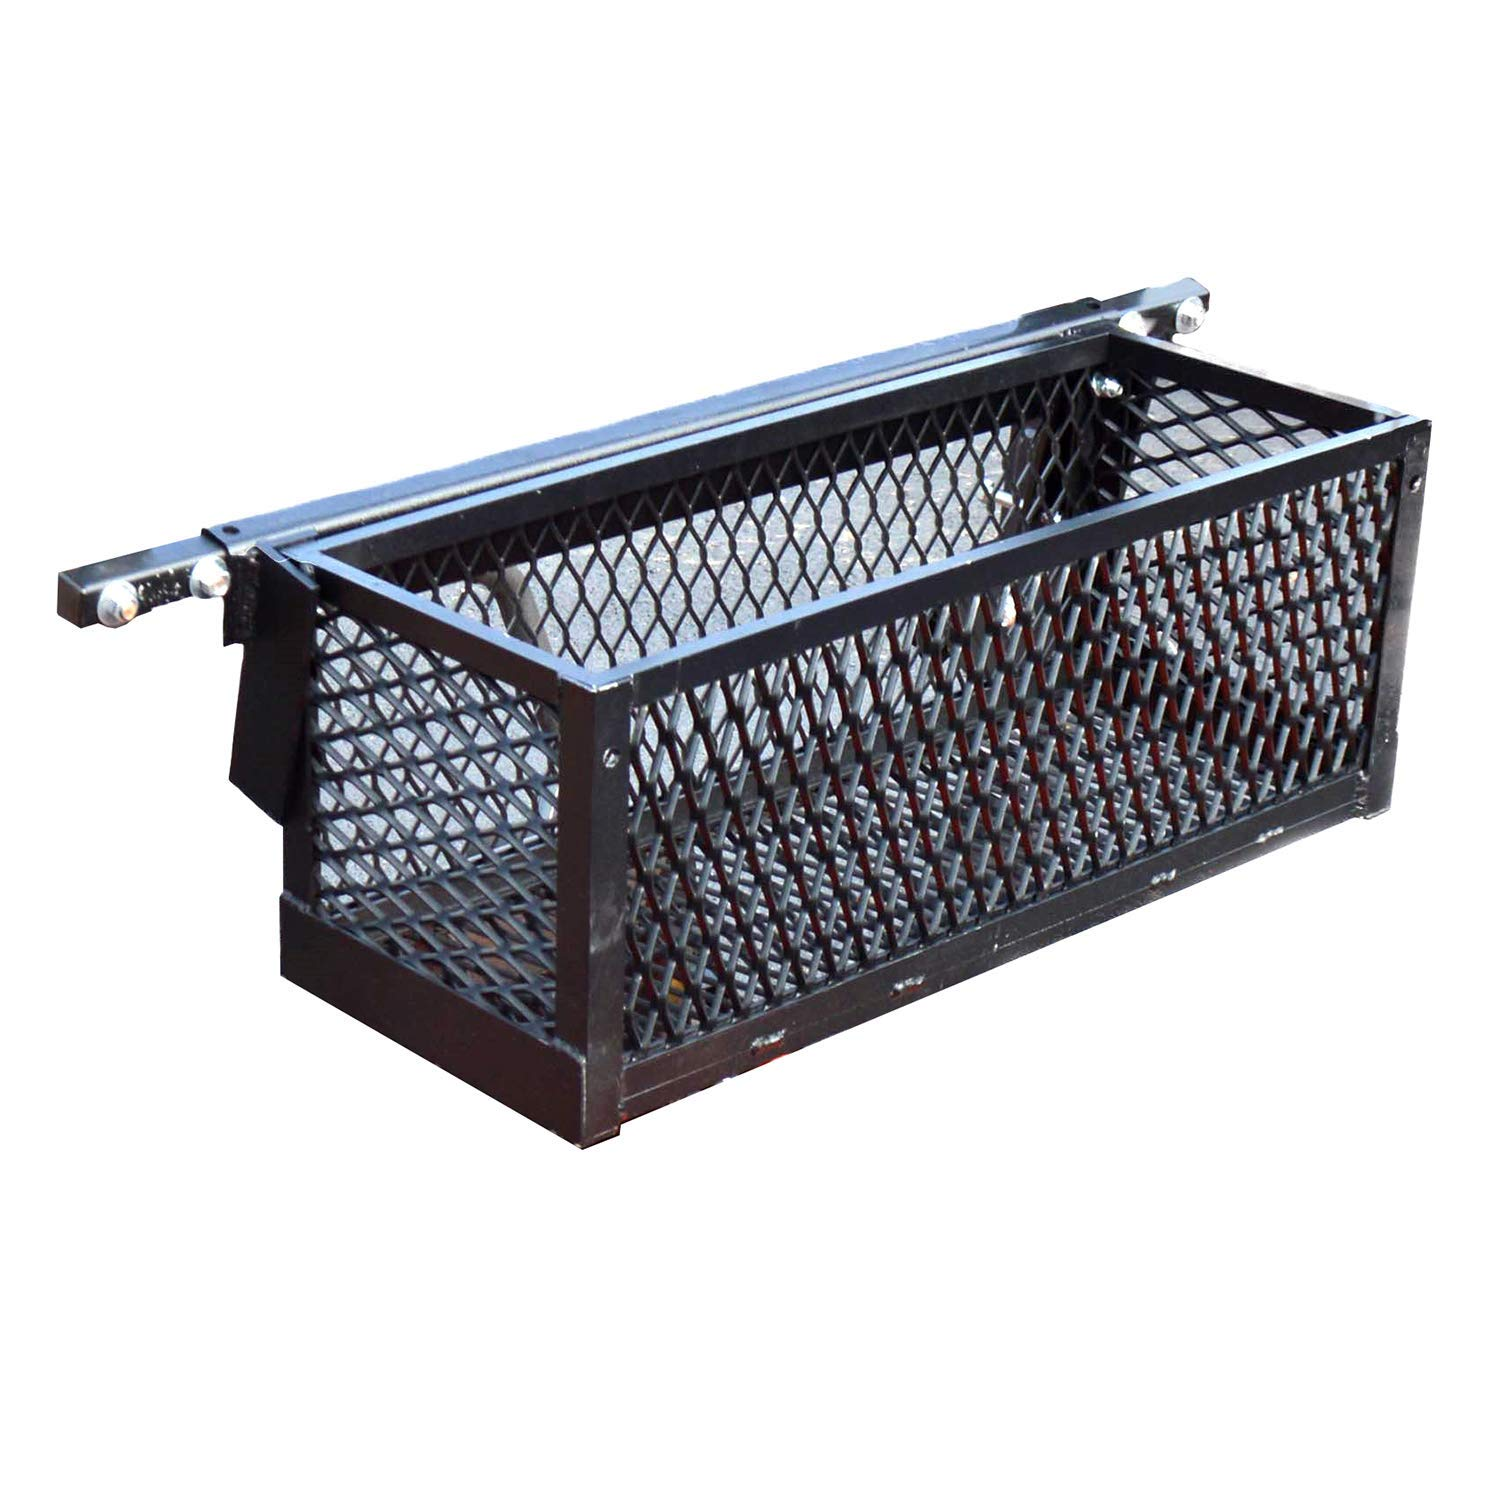 Great Day TT400 Tractor Tool-Tray by Great Day